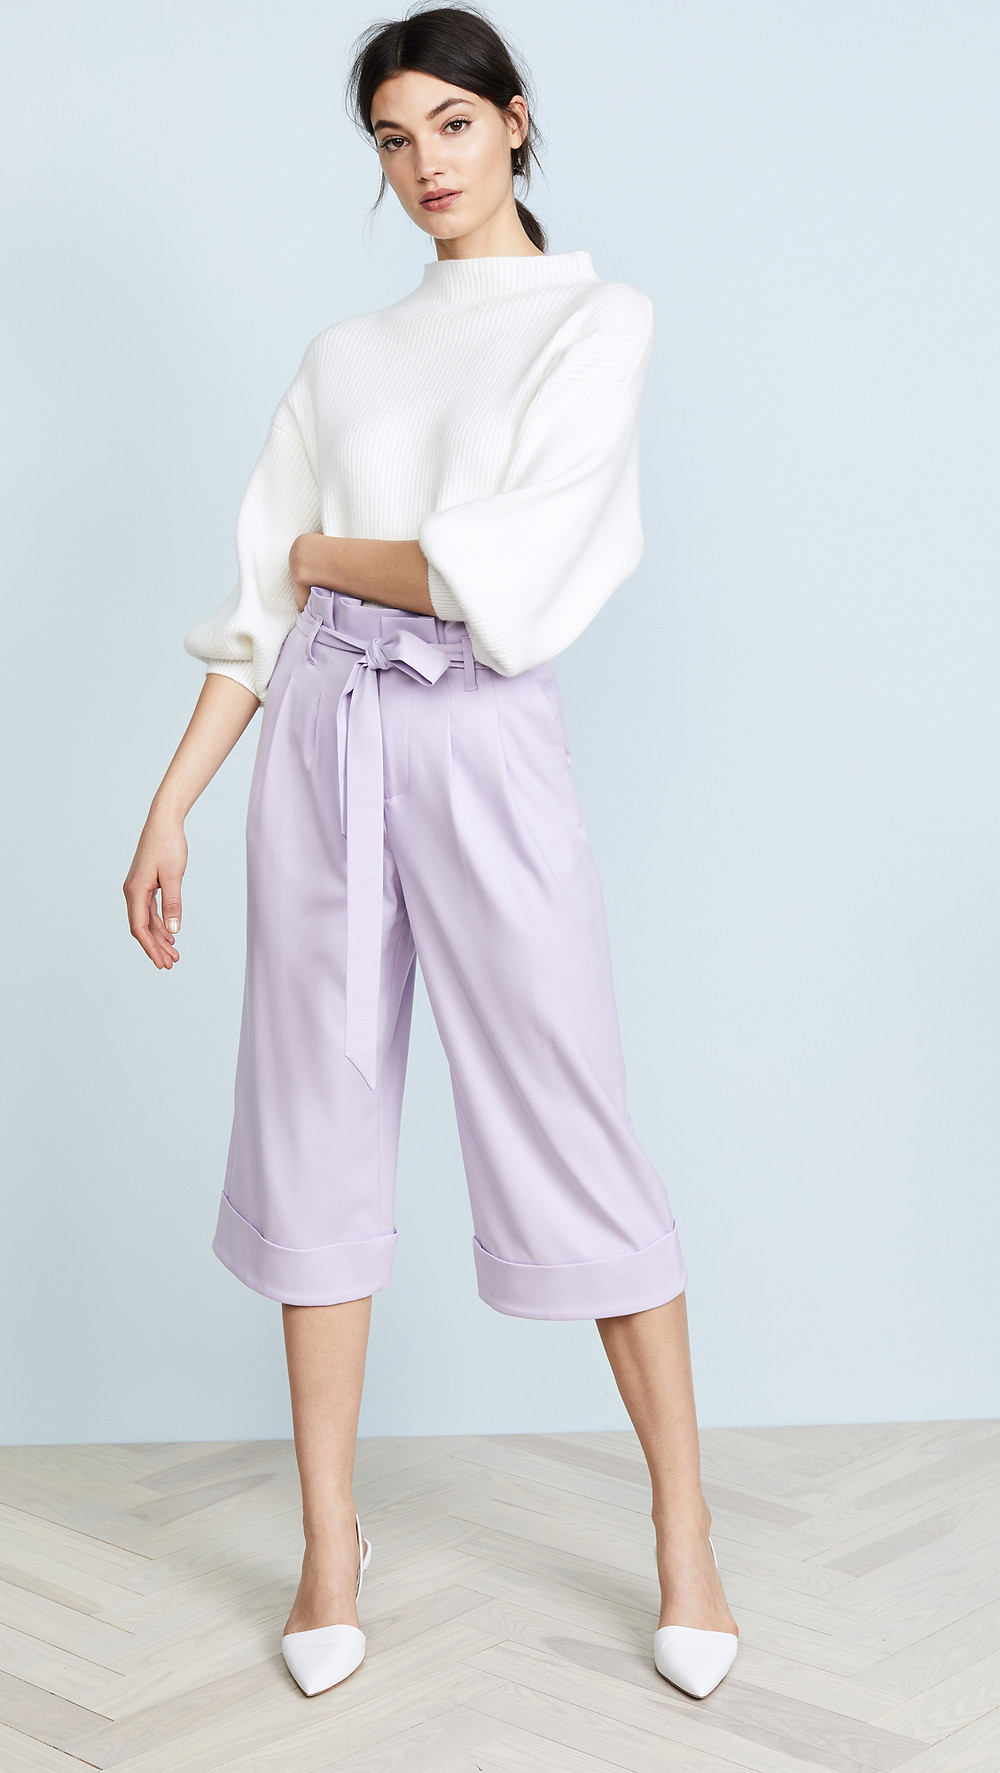 Alice + Olivia Ryan Paper Bag Pants $199.50- the rest of the look is not on sale - but I have linked them below